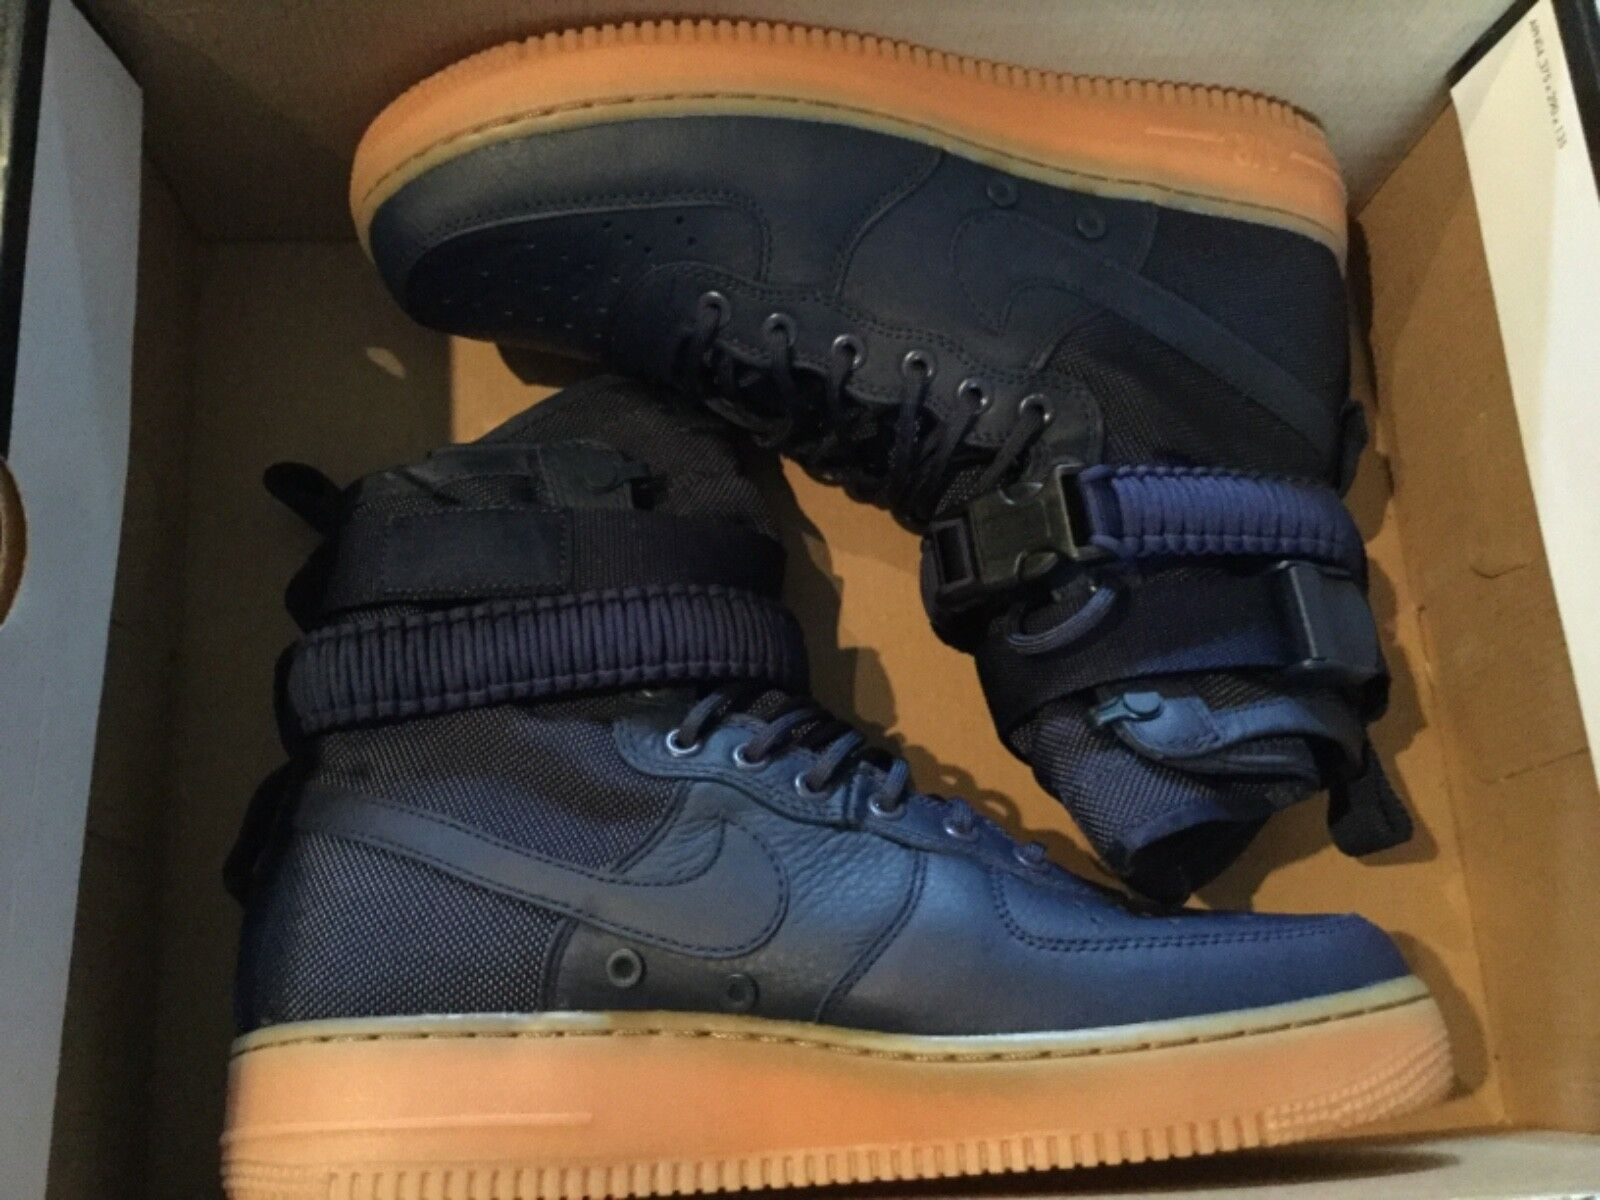 New Nike SF Air Force 1 Midnight Navy bluee Gum AF1 shoes  864024-400 Sz 10 mens